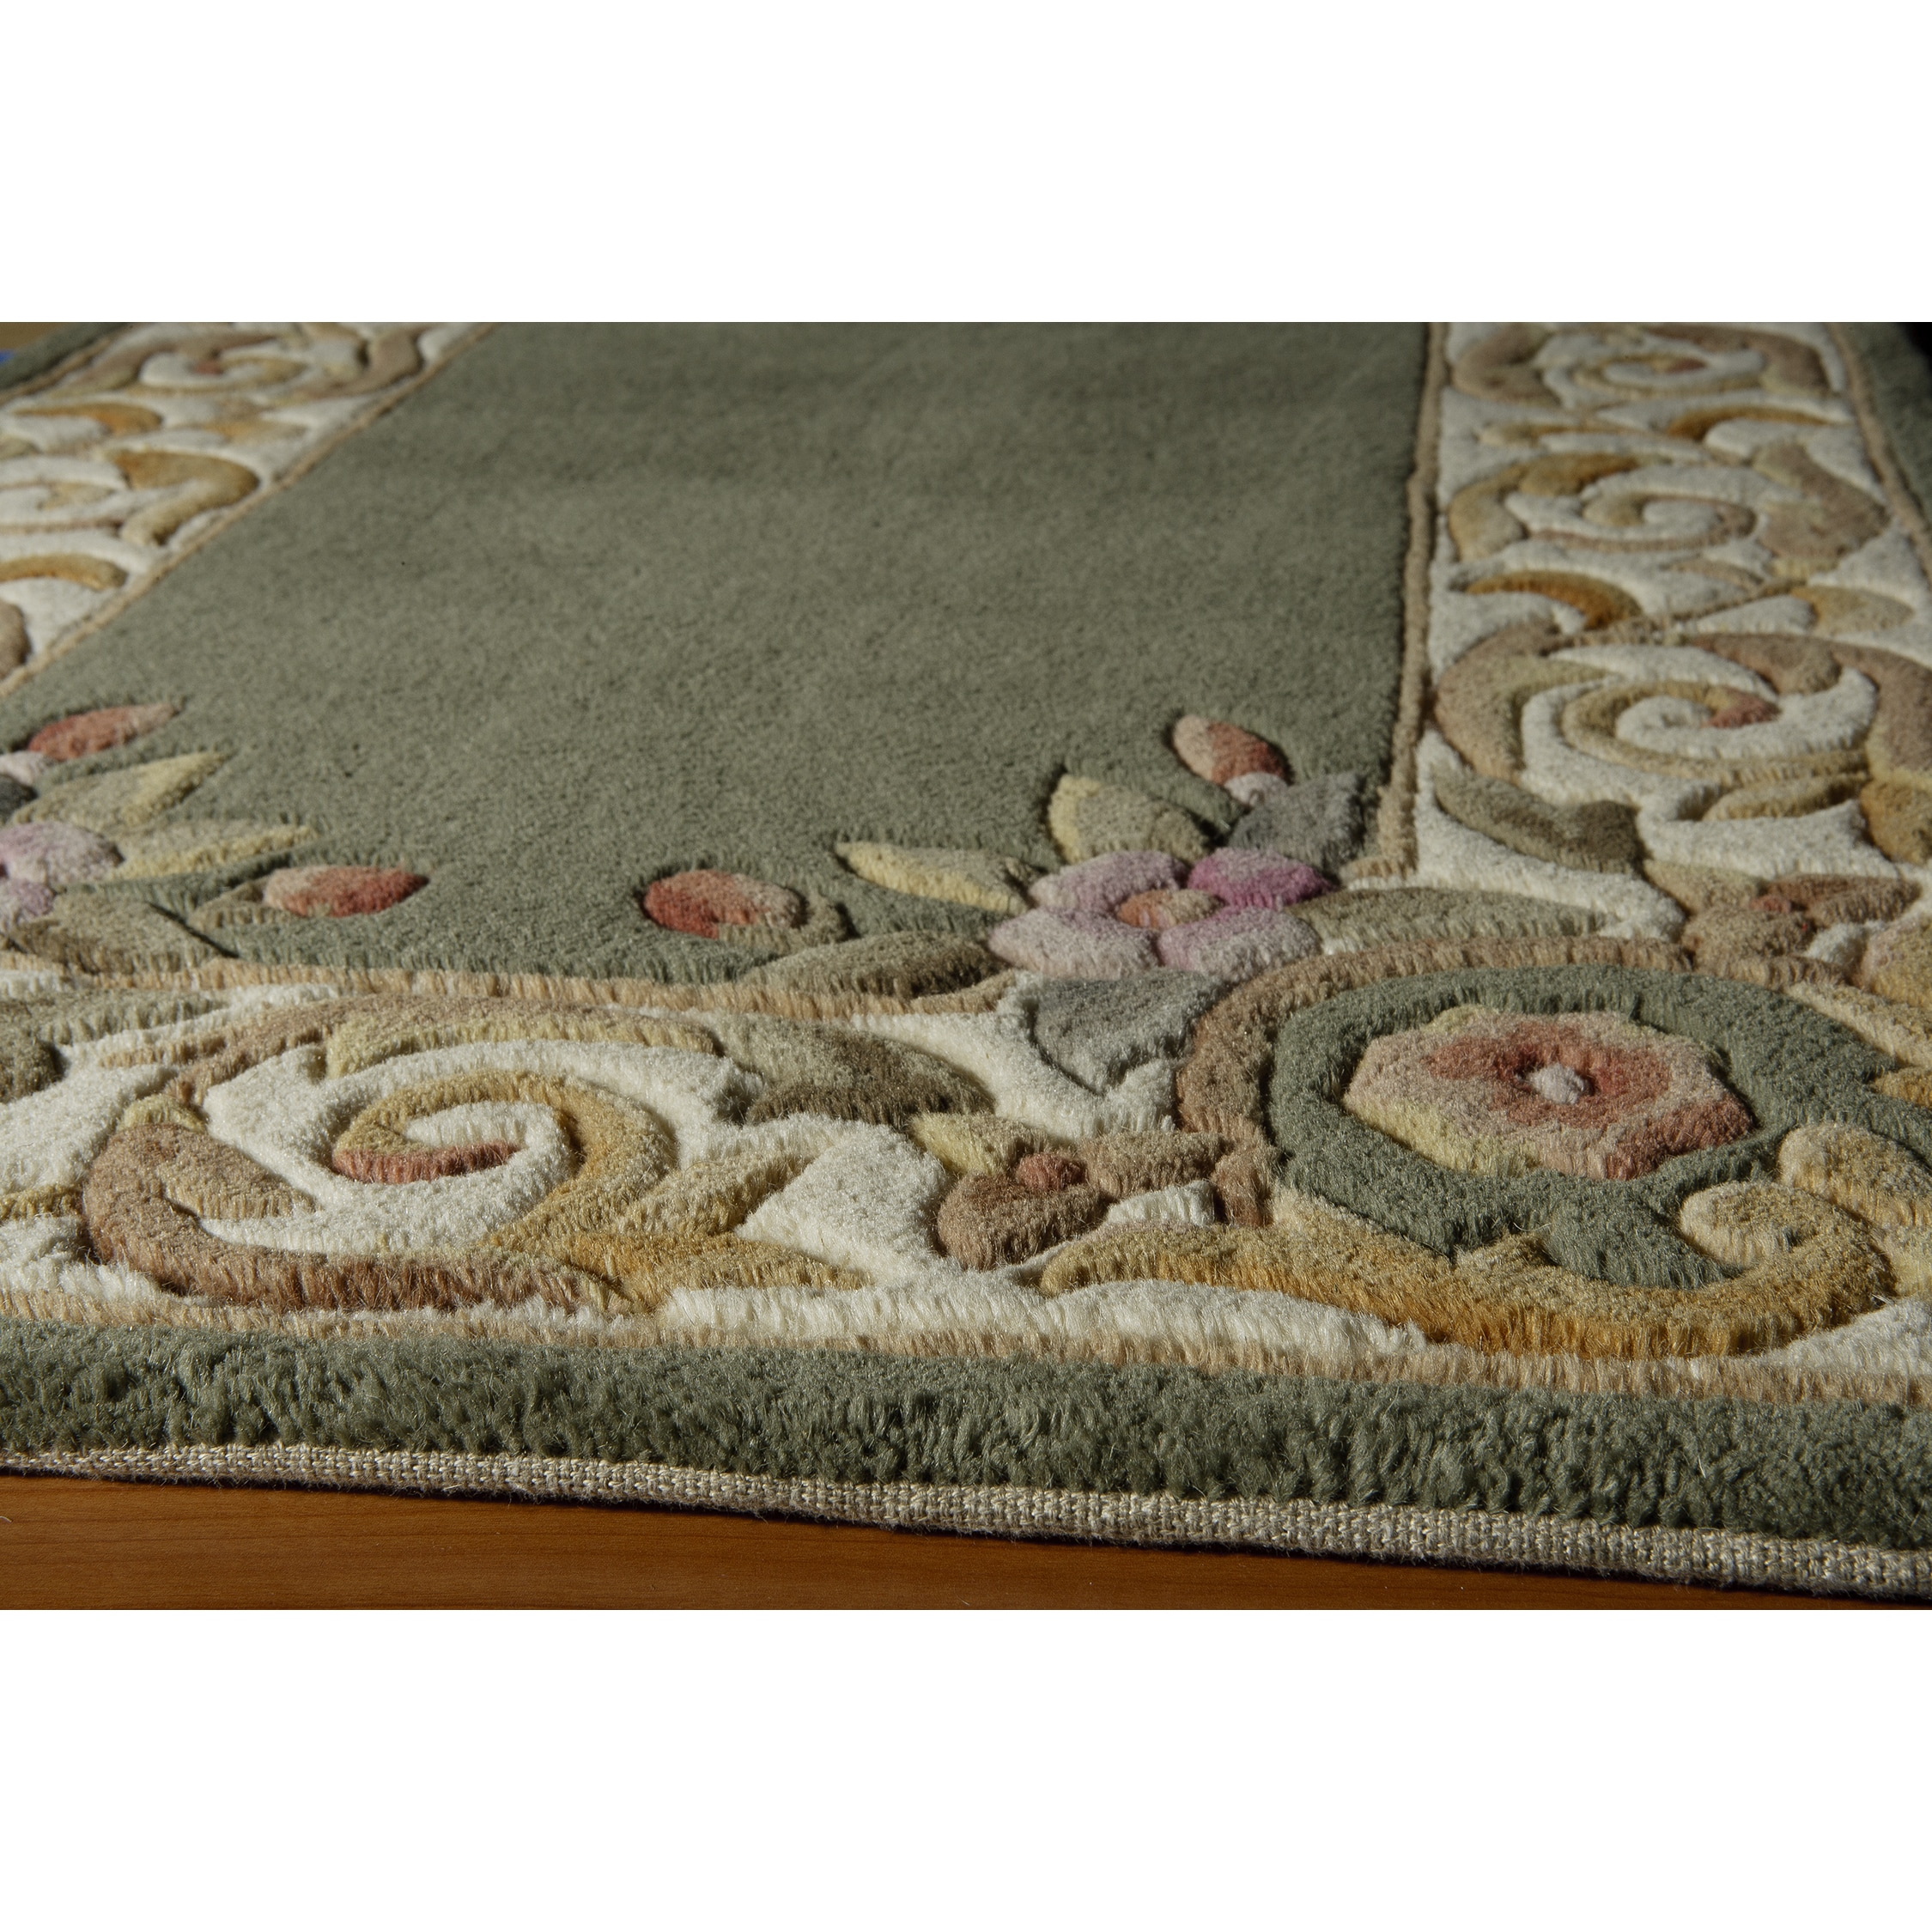 Momeni Aubusson Floral Border Hand-tufted Wool Area Rug (2'3 x 12') by Momeni